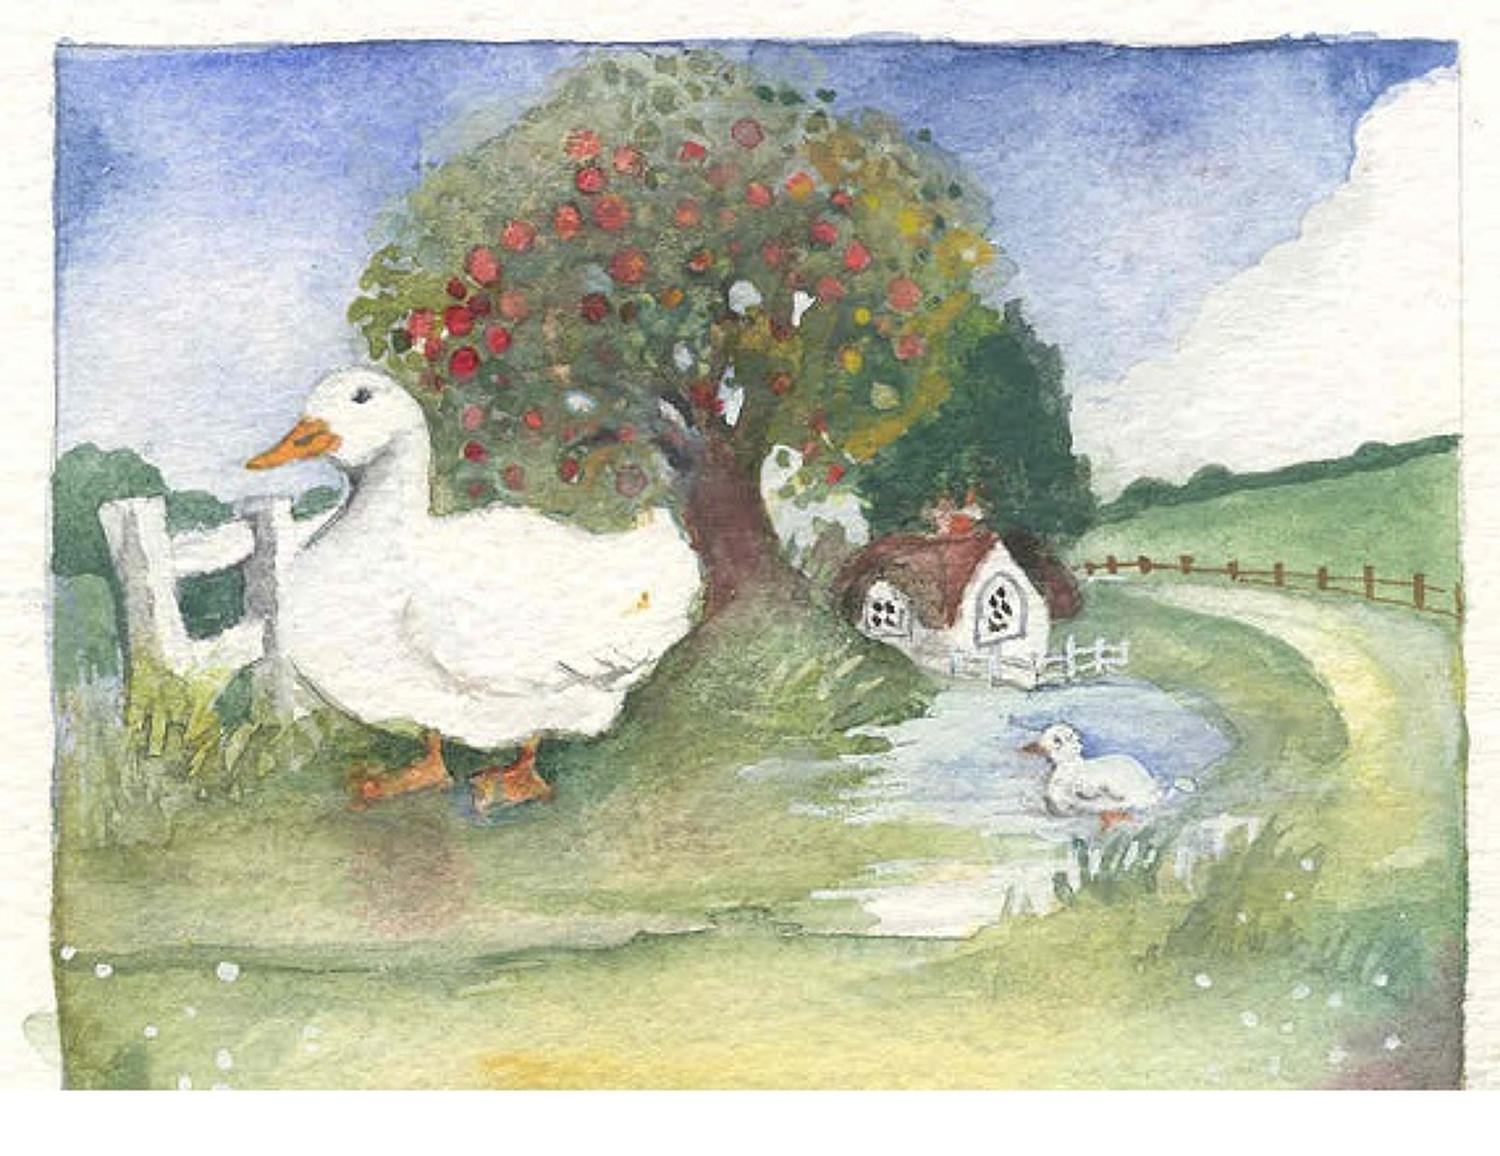 Duck & apple tree